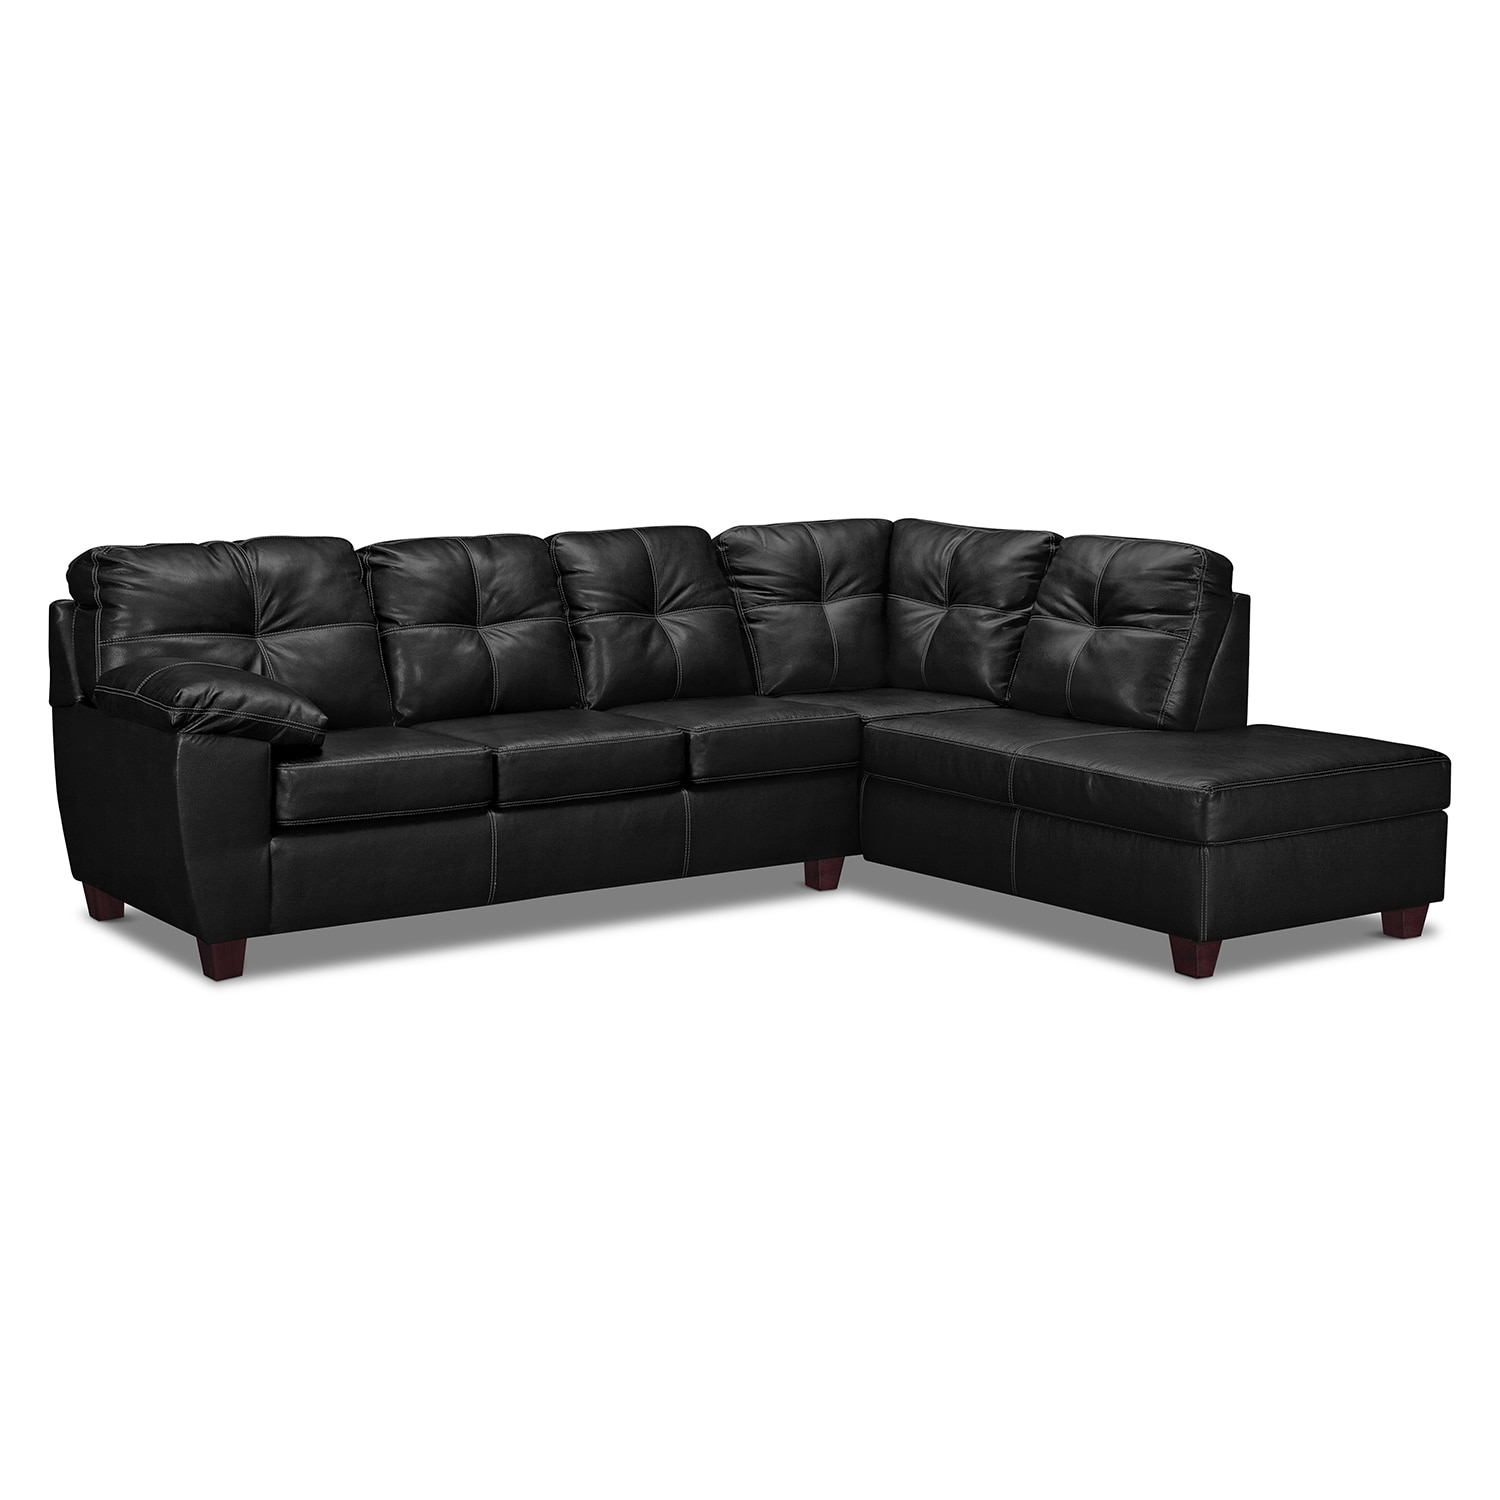 Ricardo 2 piece sectional with right facing chaise onyx for 2 piece sectionals with chaise